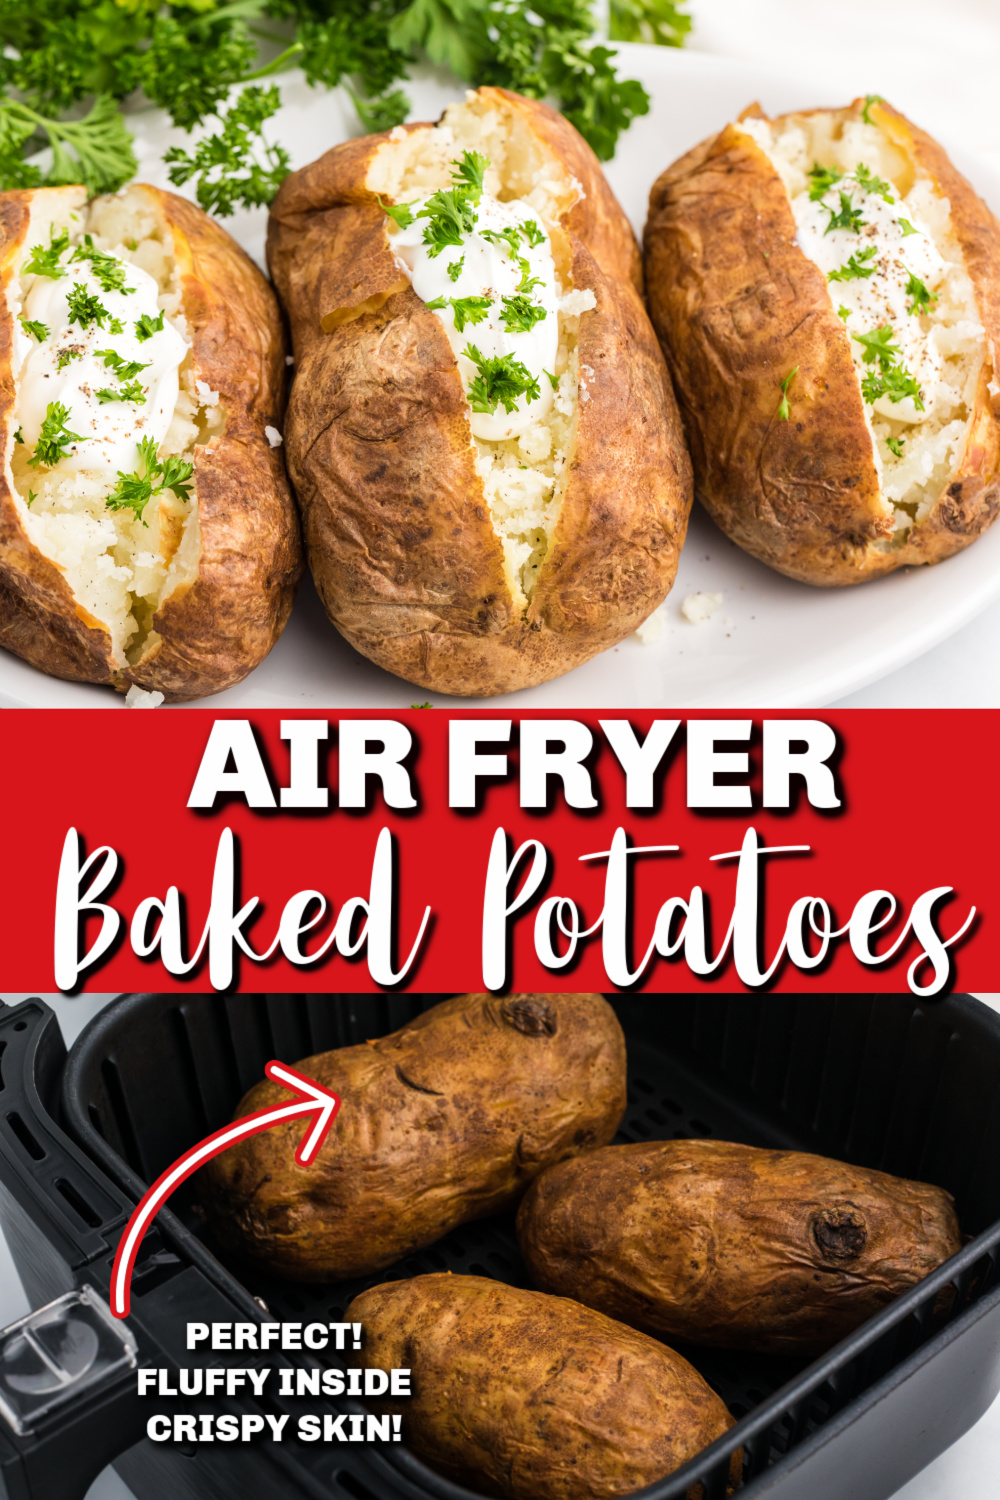 Air Fryer Baked Potatoes are done perfectly in the Air Fryer in just 40-45 minutes. All you'll need to finish these off is your favorite toppings! Check out how easy it is to make the best baked potatoes with perfectly crispy skin on the outside and delicious, soft, fluffy insides. It's an easy classic side dish that can also make a delicious main course.